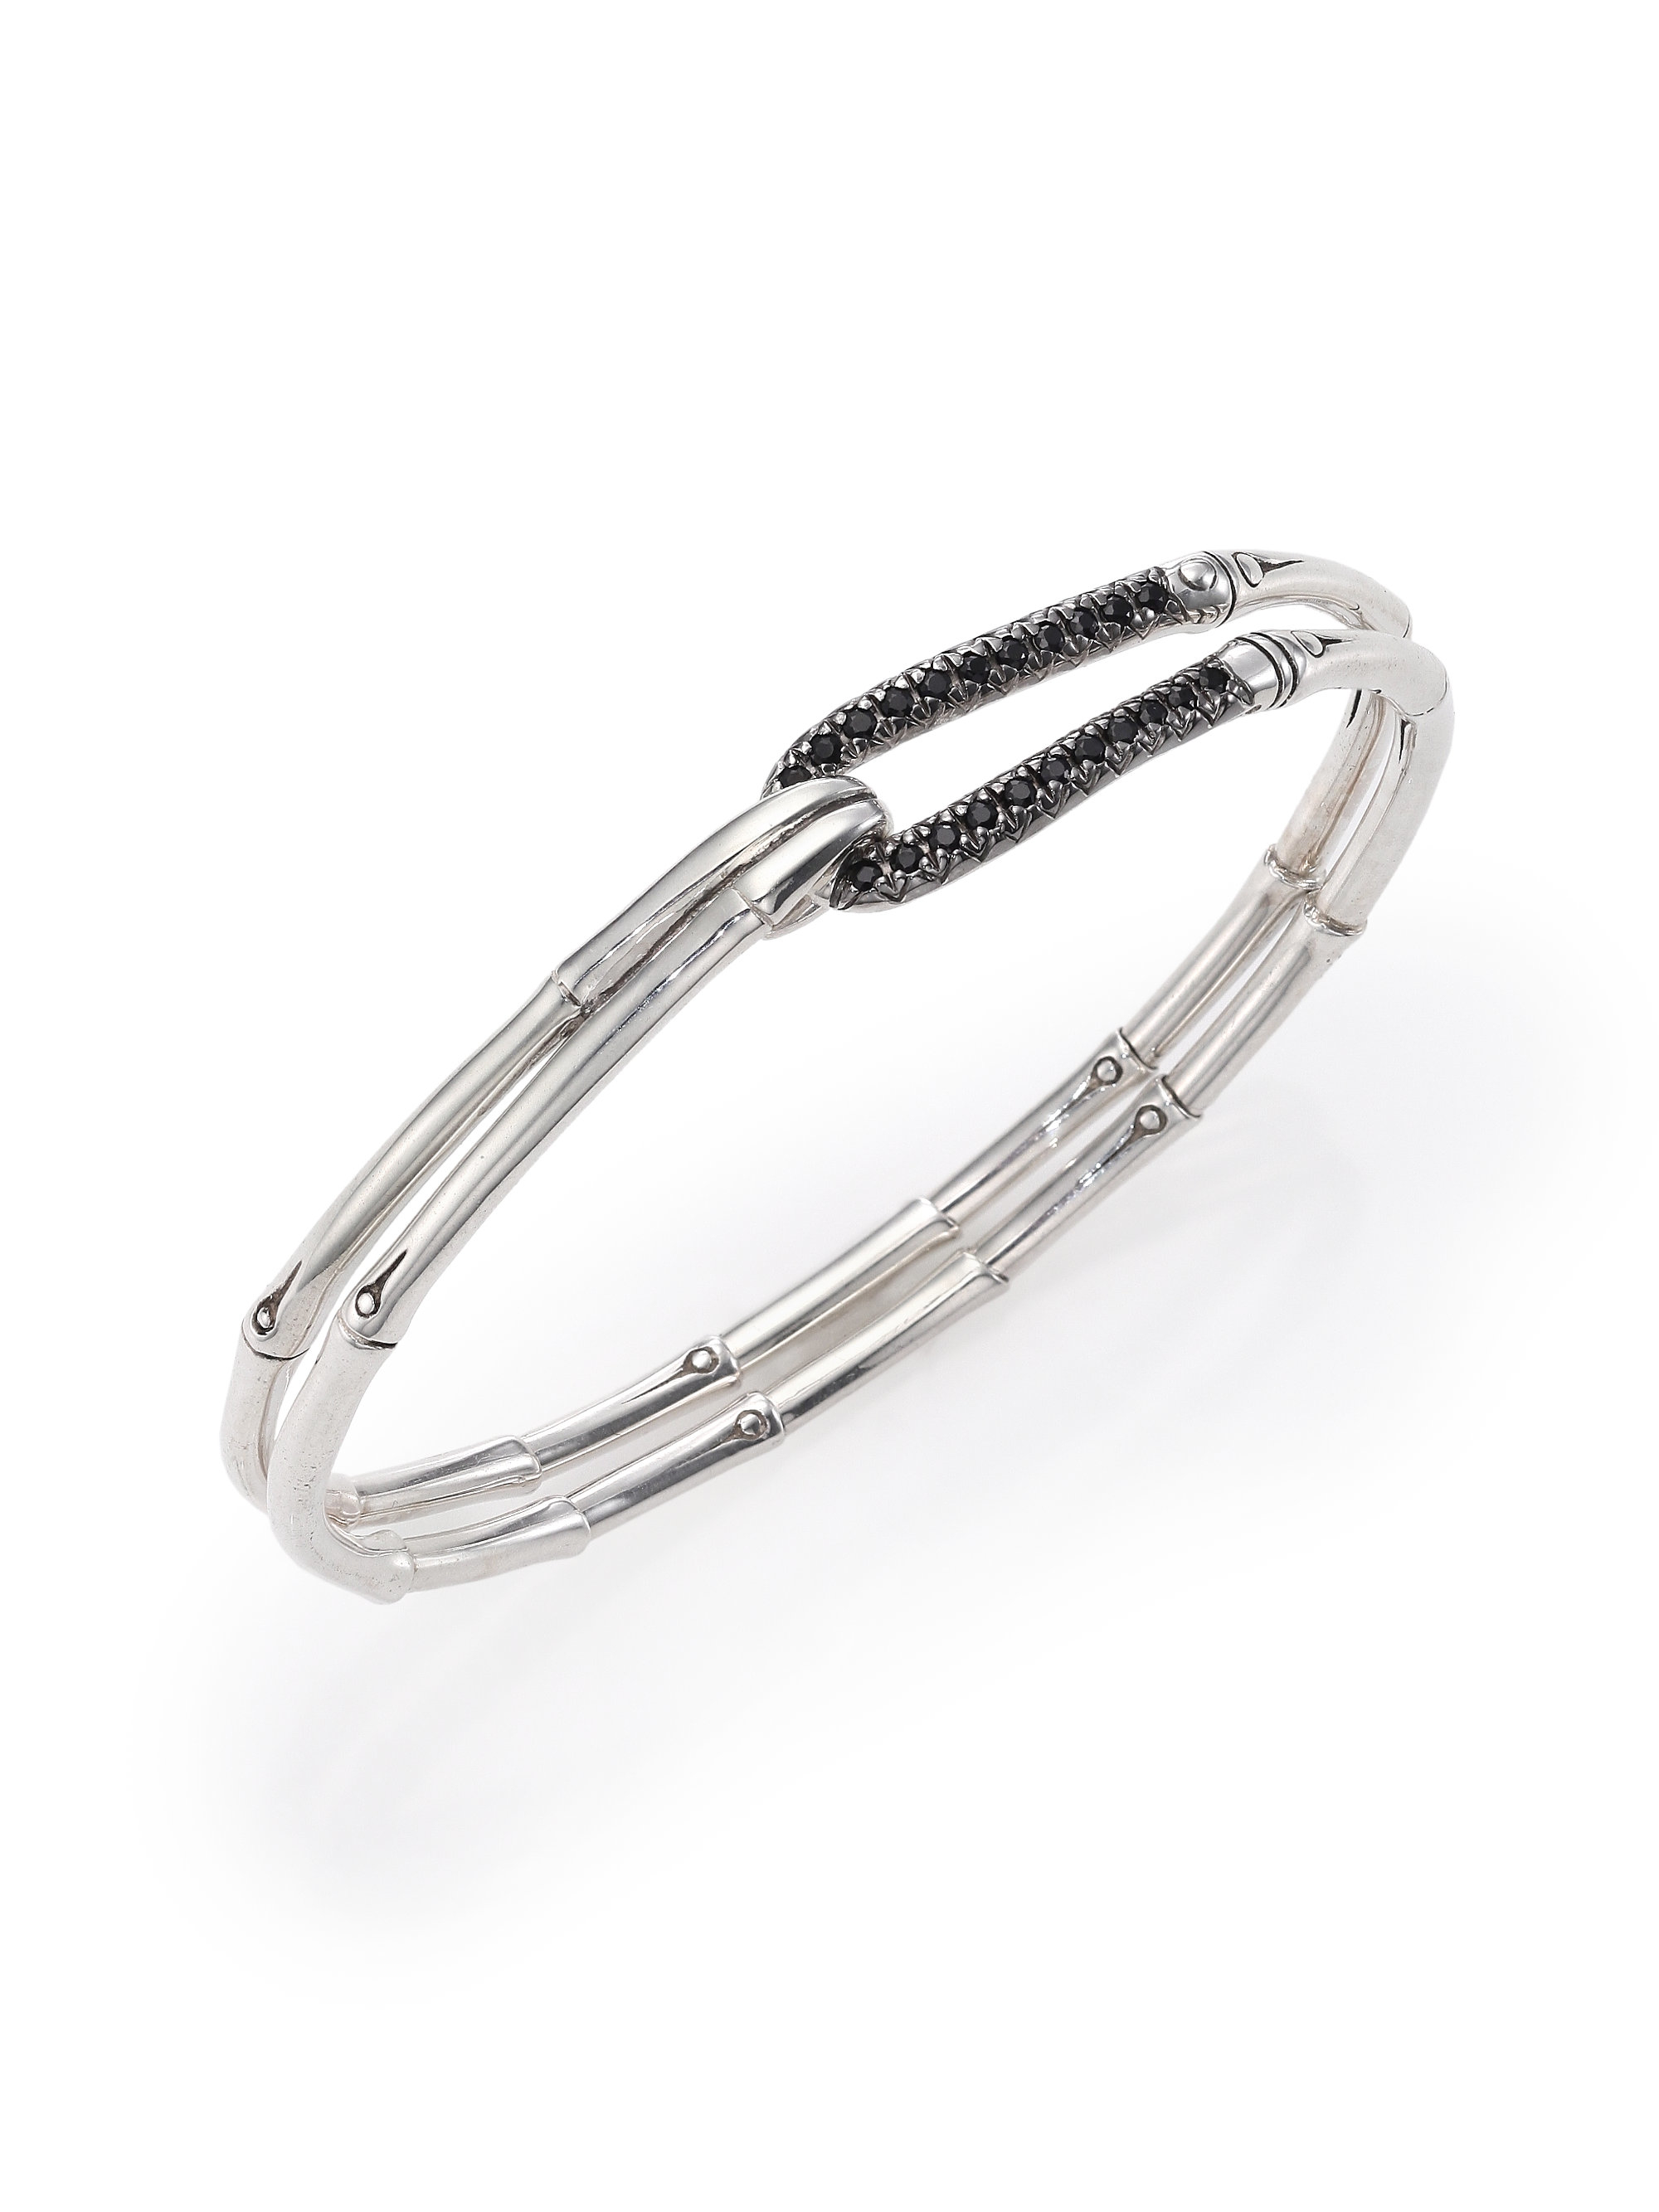 John Hardy Bamboo Sapphire Amp Sterling Silver Hook Bangle